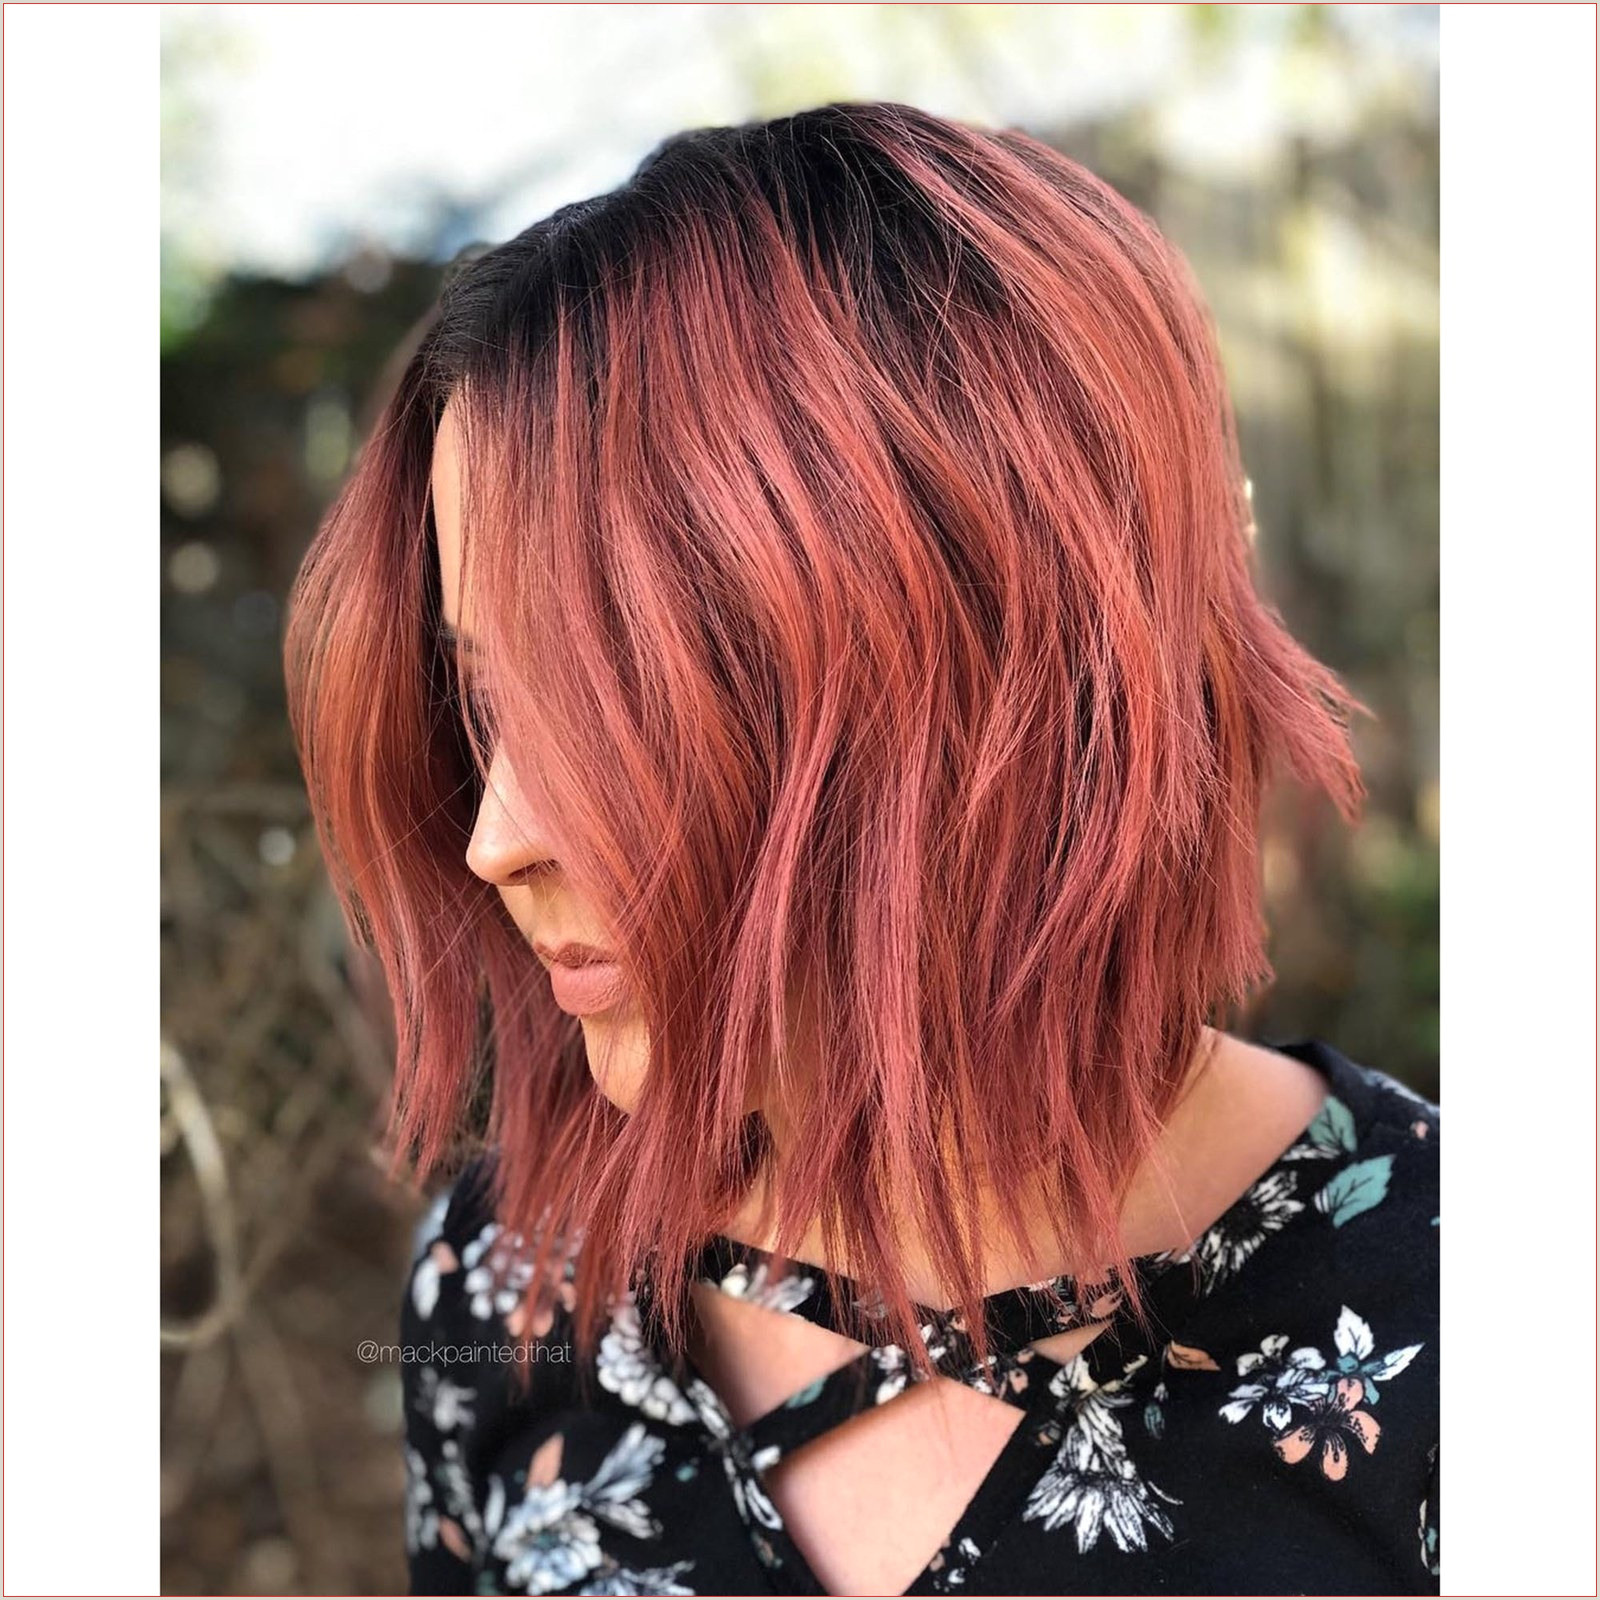 Redken Chestnut Brown Hair Color Hairstyles Light Copper Brown Hair Super Amazing Fashion